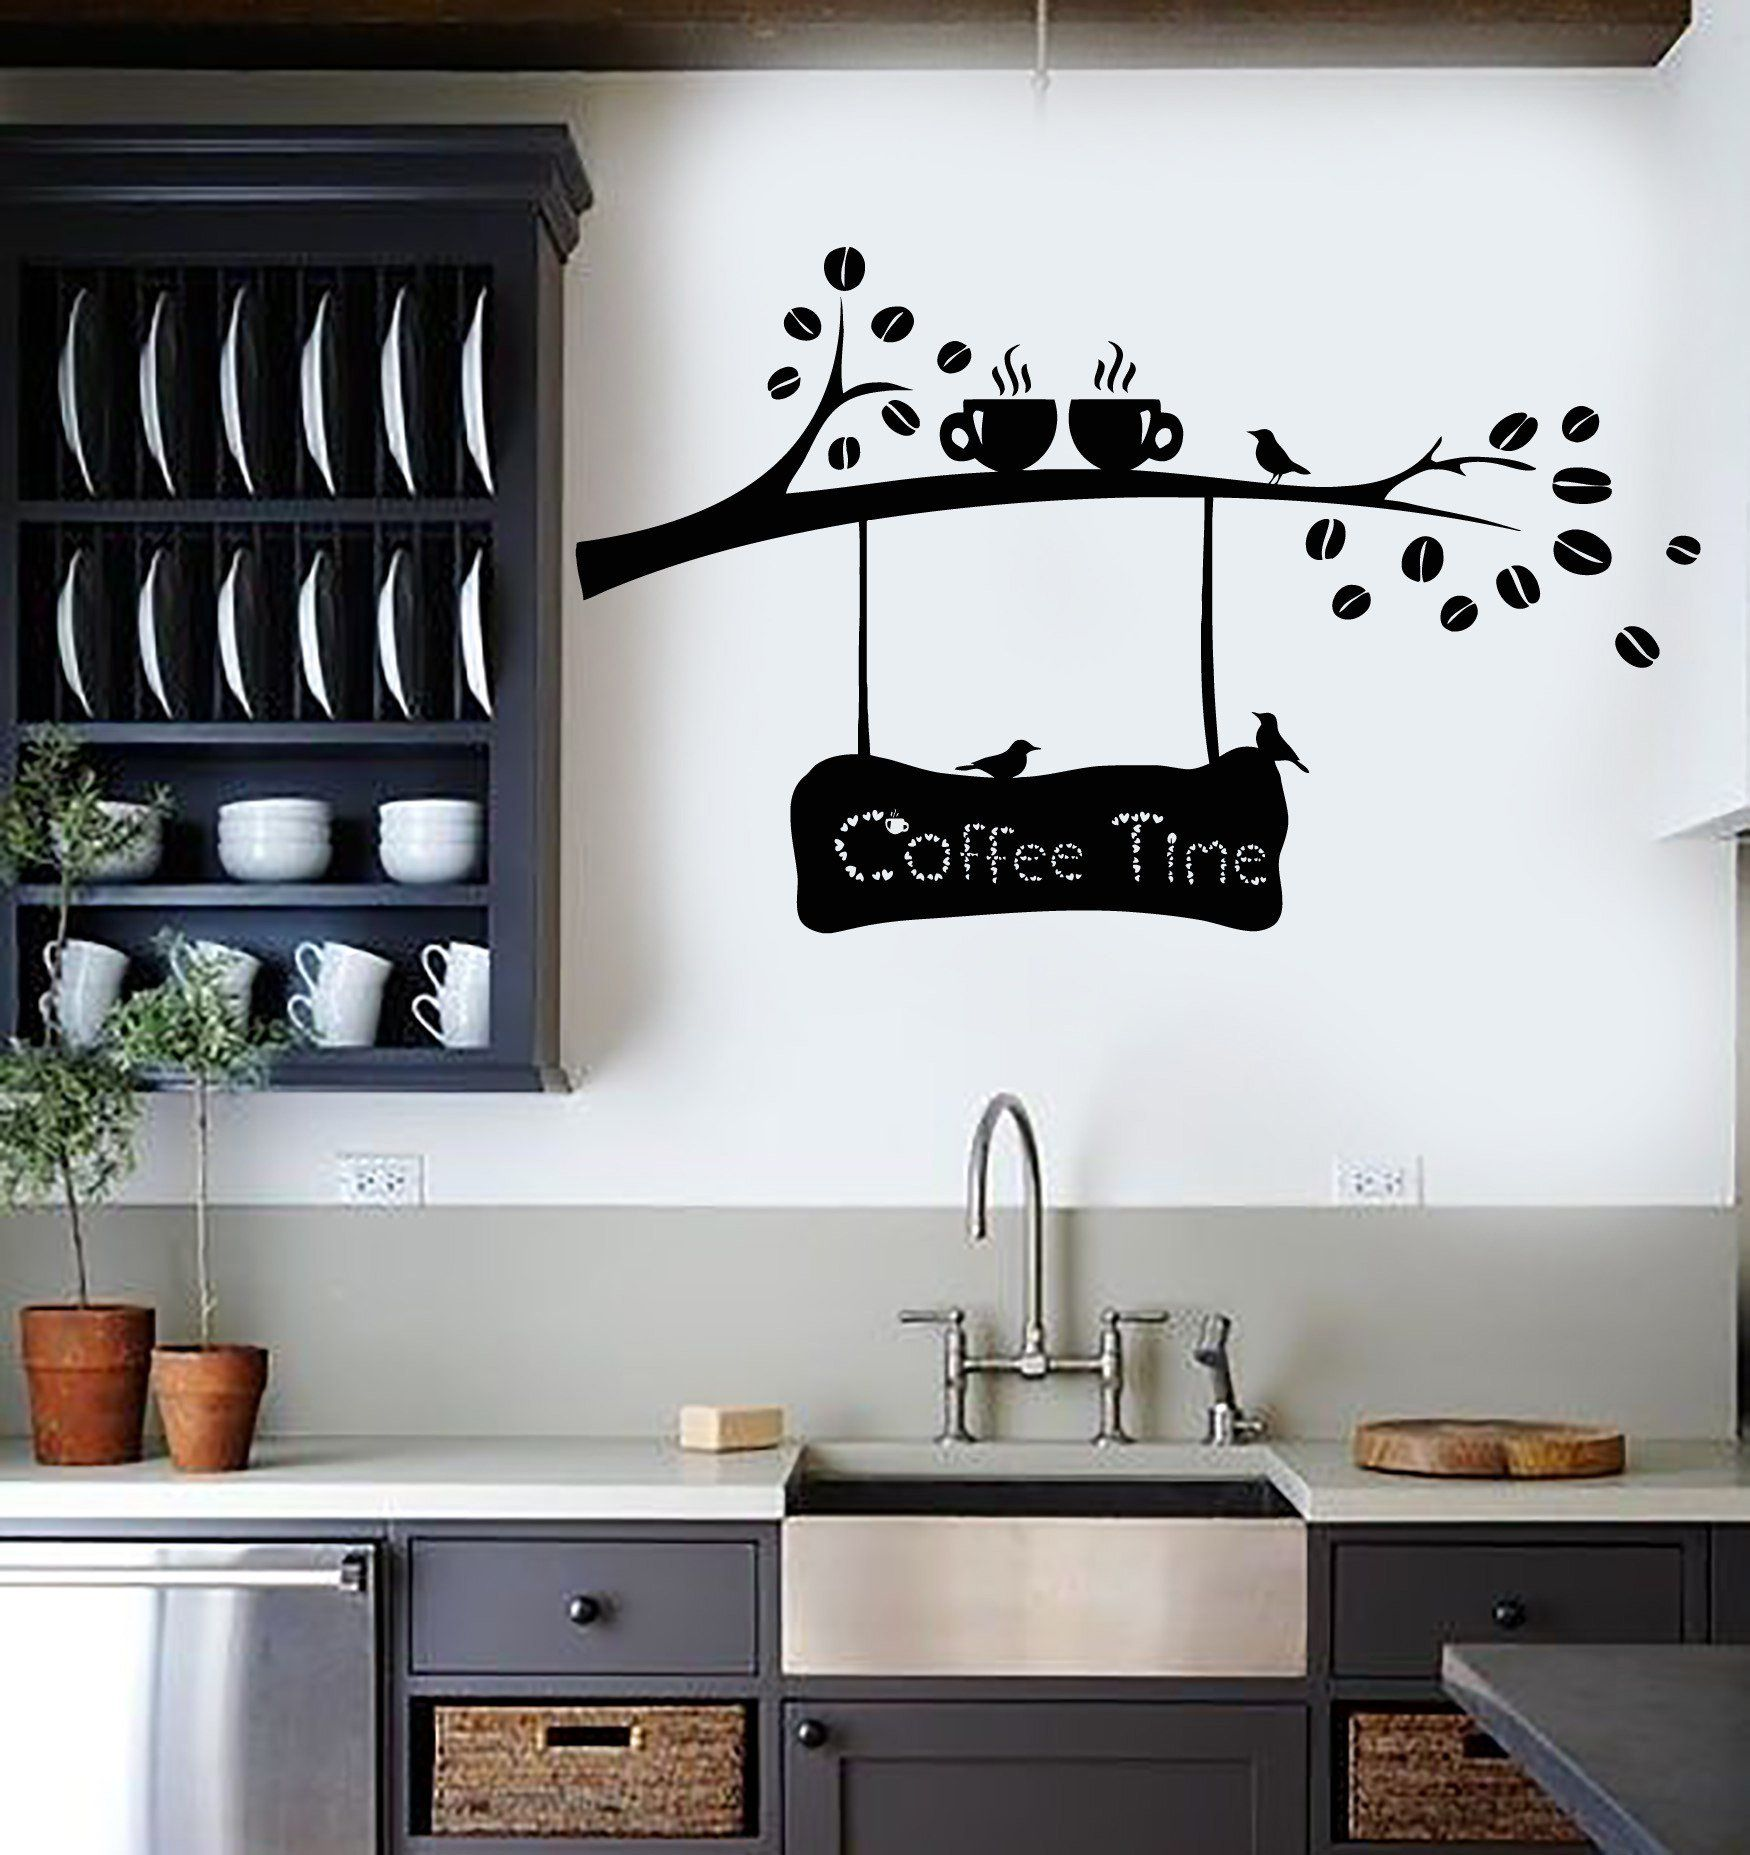 Marvelous Vinyl Wall Decal Coffee Beans Branch Cup Birds Kitchen Decor Stickers  Unique Gift (ig4158)